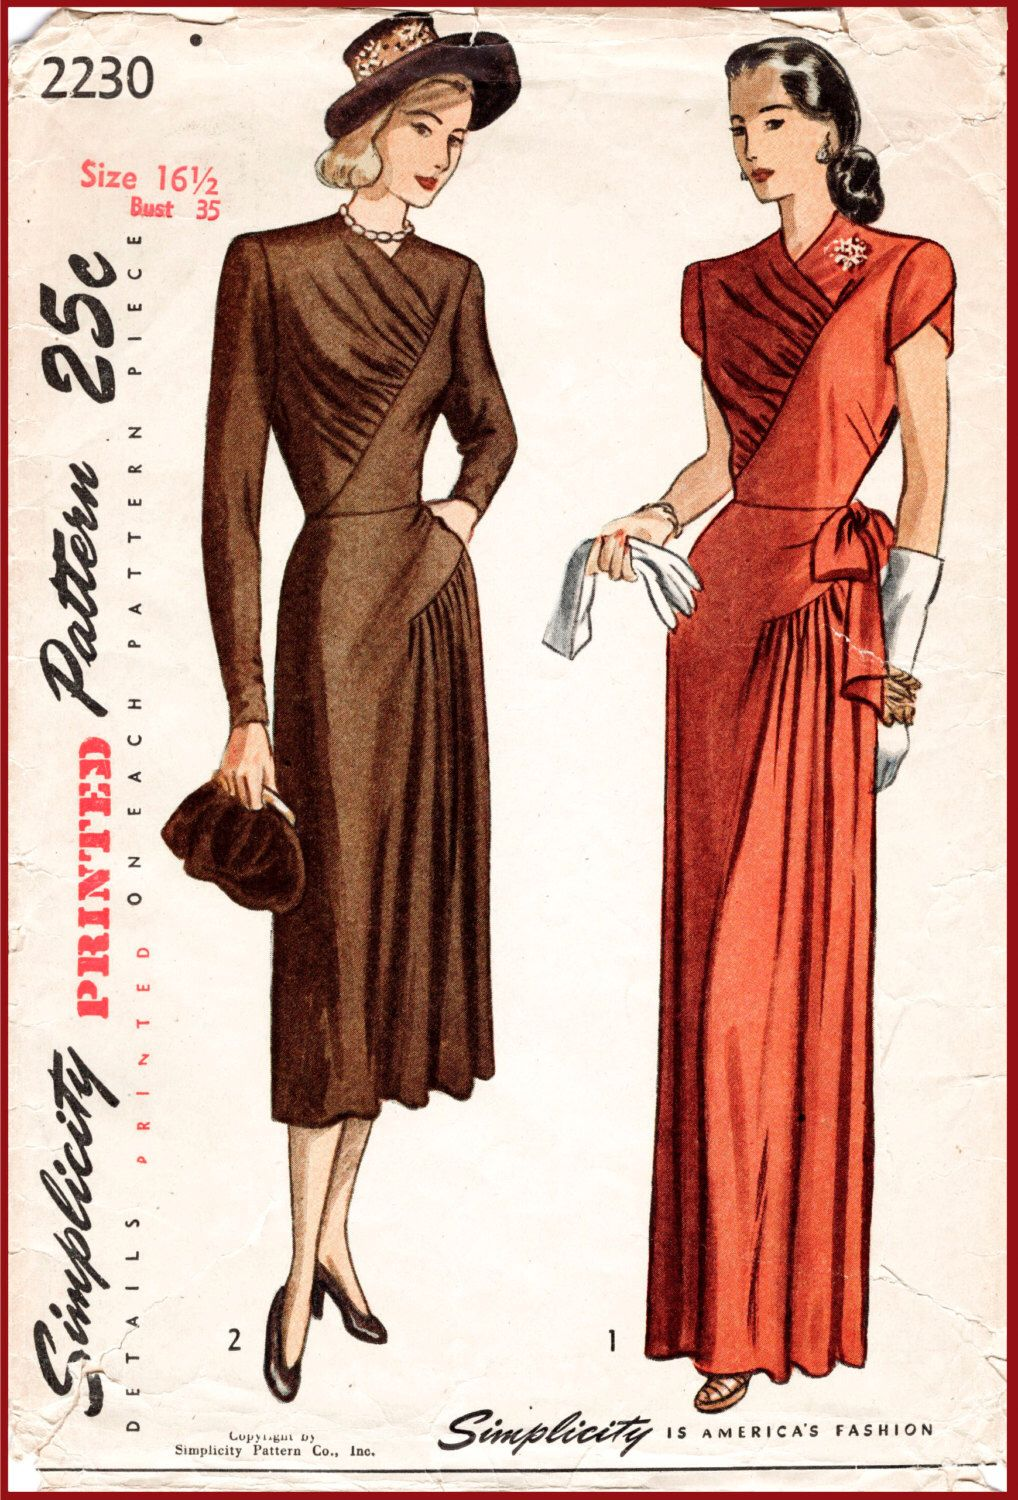 40s 1940s vintage reproduction sewing pattern film noir evening ball gown cocktail draped pleats size small medium bust 35 b35 reproduction